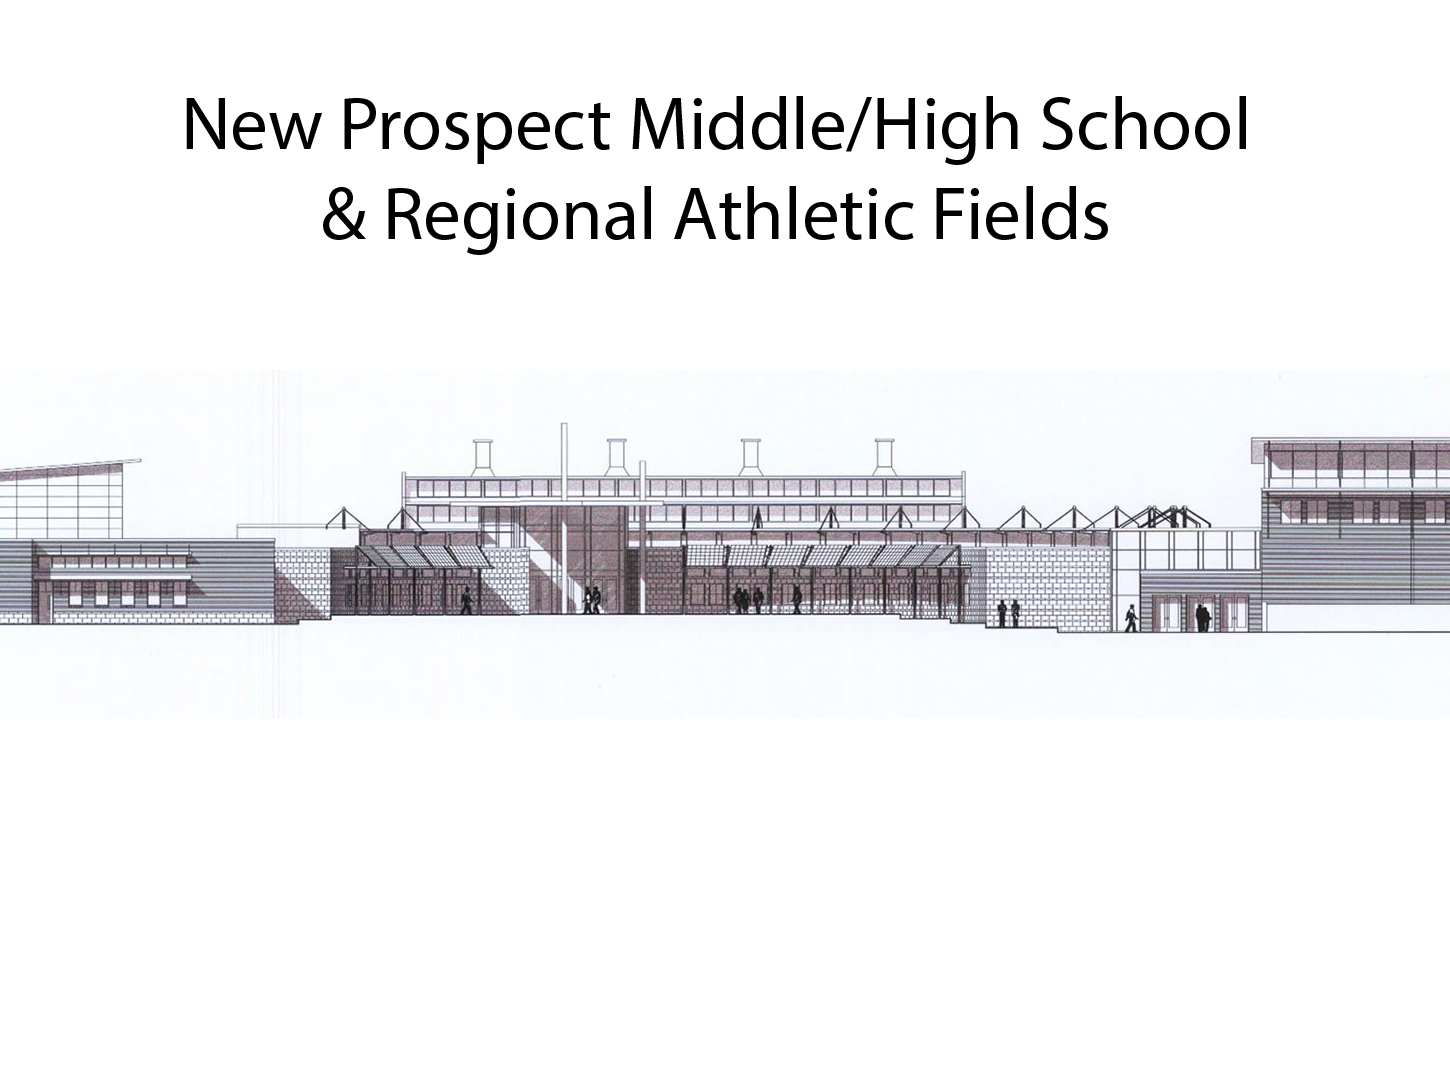 31-evergreen-fort_collins-new_prospect_middle-high_school-fox_grove